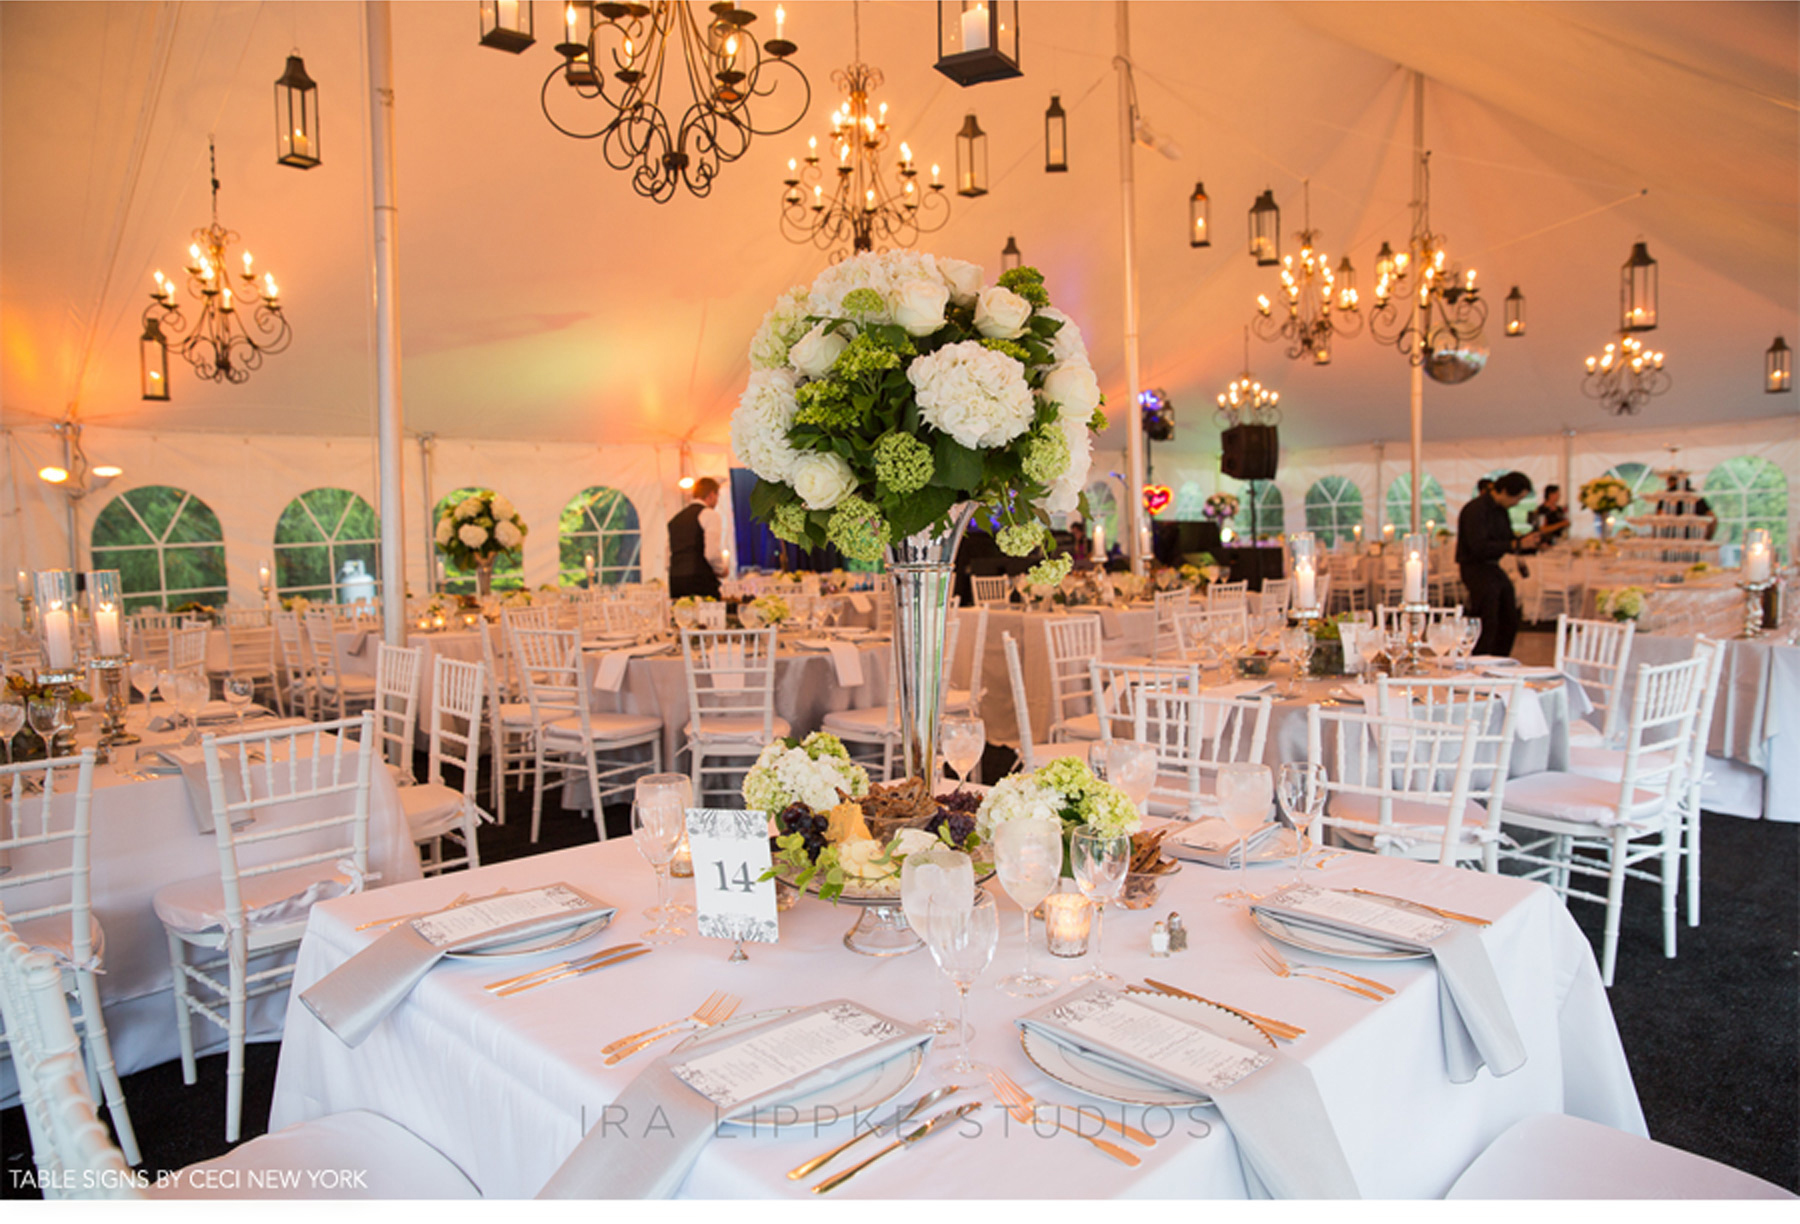 Our Muse - Chic Hamptons Wedding - Be inspired by Cornelia and Robert's chic wedding in the Hamptons - ceci new york, escort card, menu, bride, groom, chair sign, table sign, custom, design, gold, foil, letterpress, accessory, wedding, hamptons, reception, east hampton